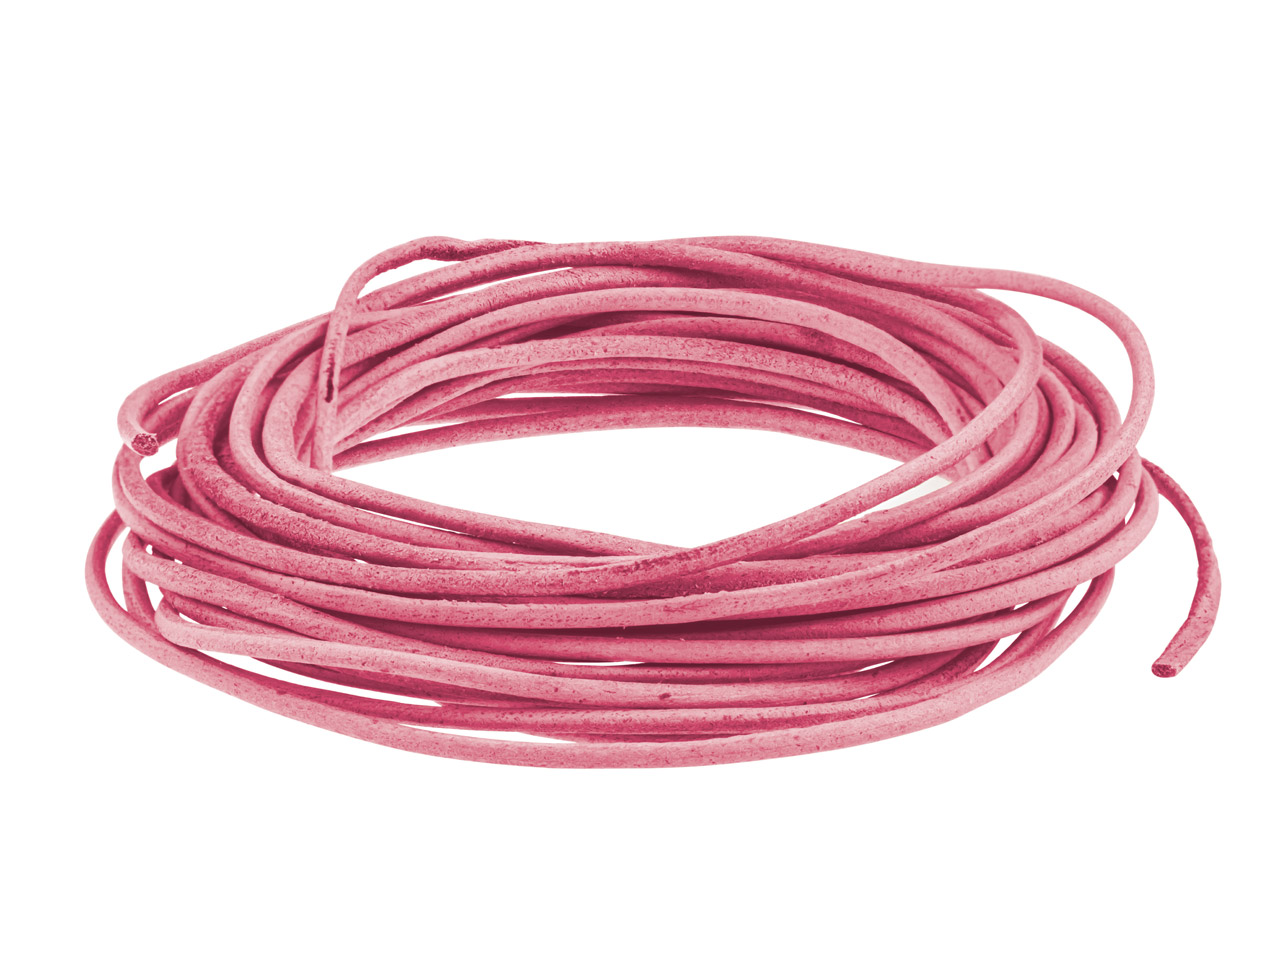 Pink Round Leather Cord, 2mm       Diameter, 3 X 1 Metre Length